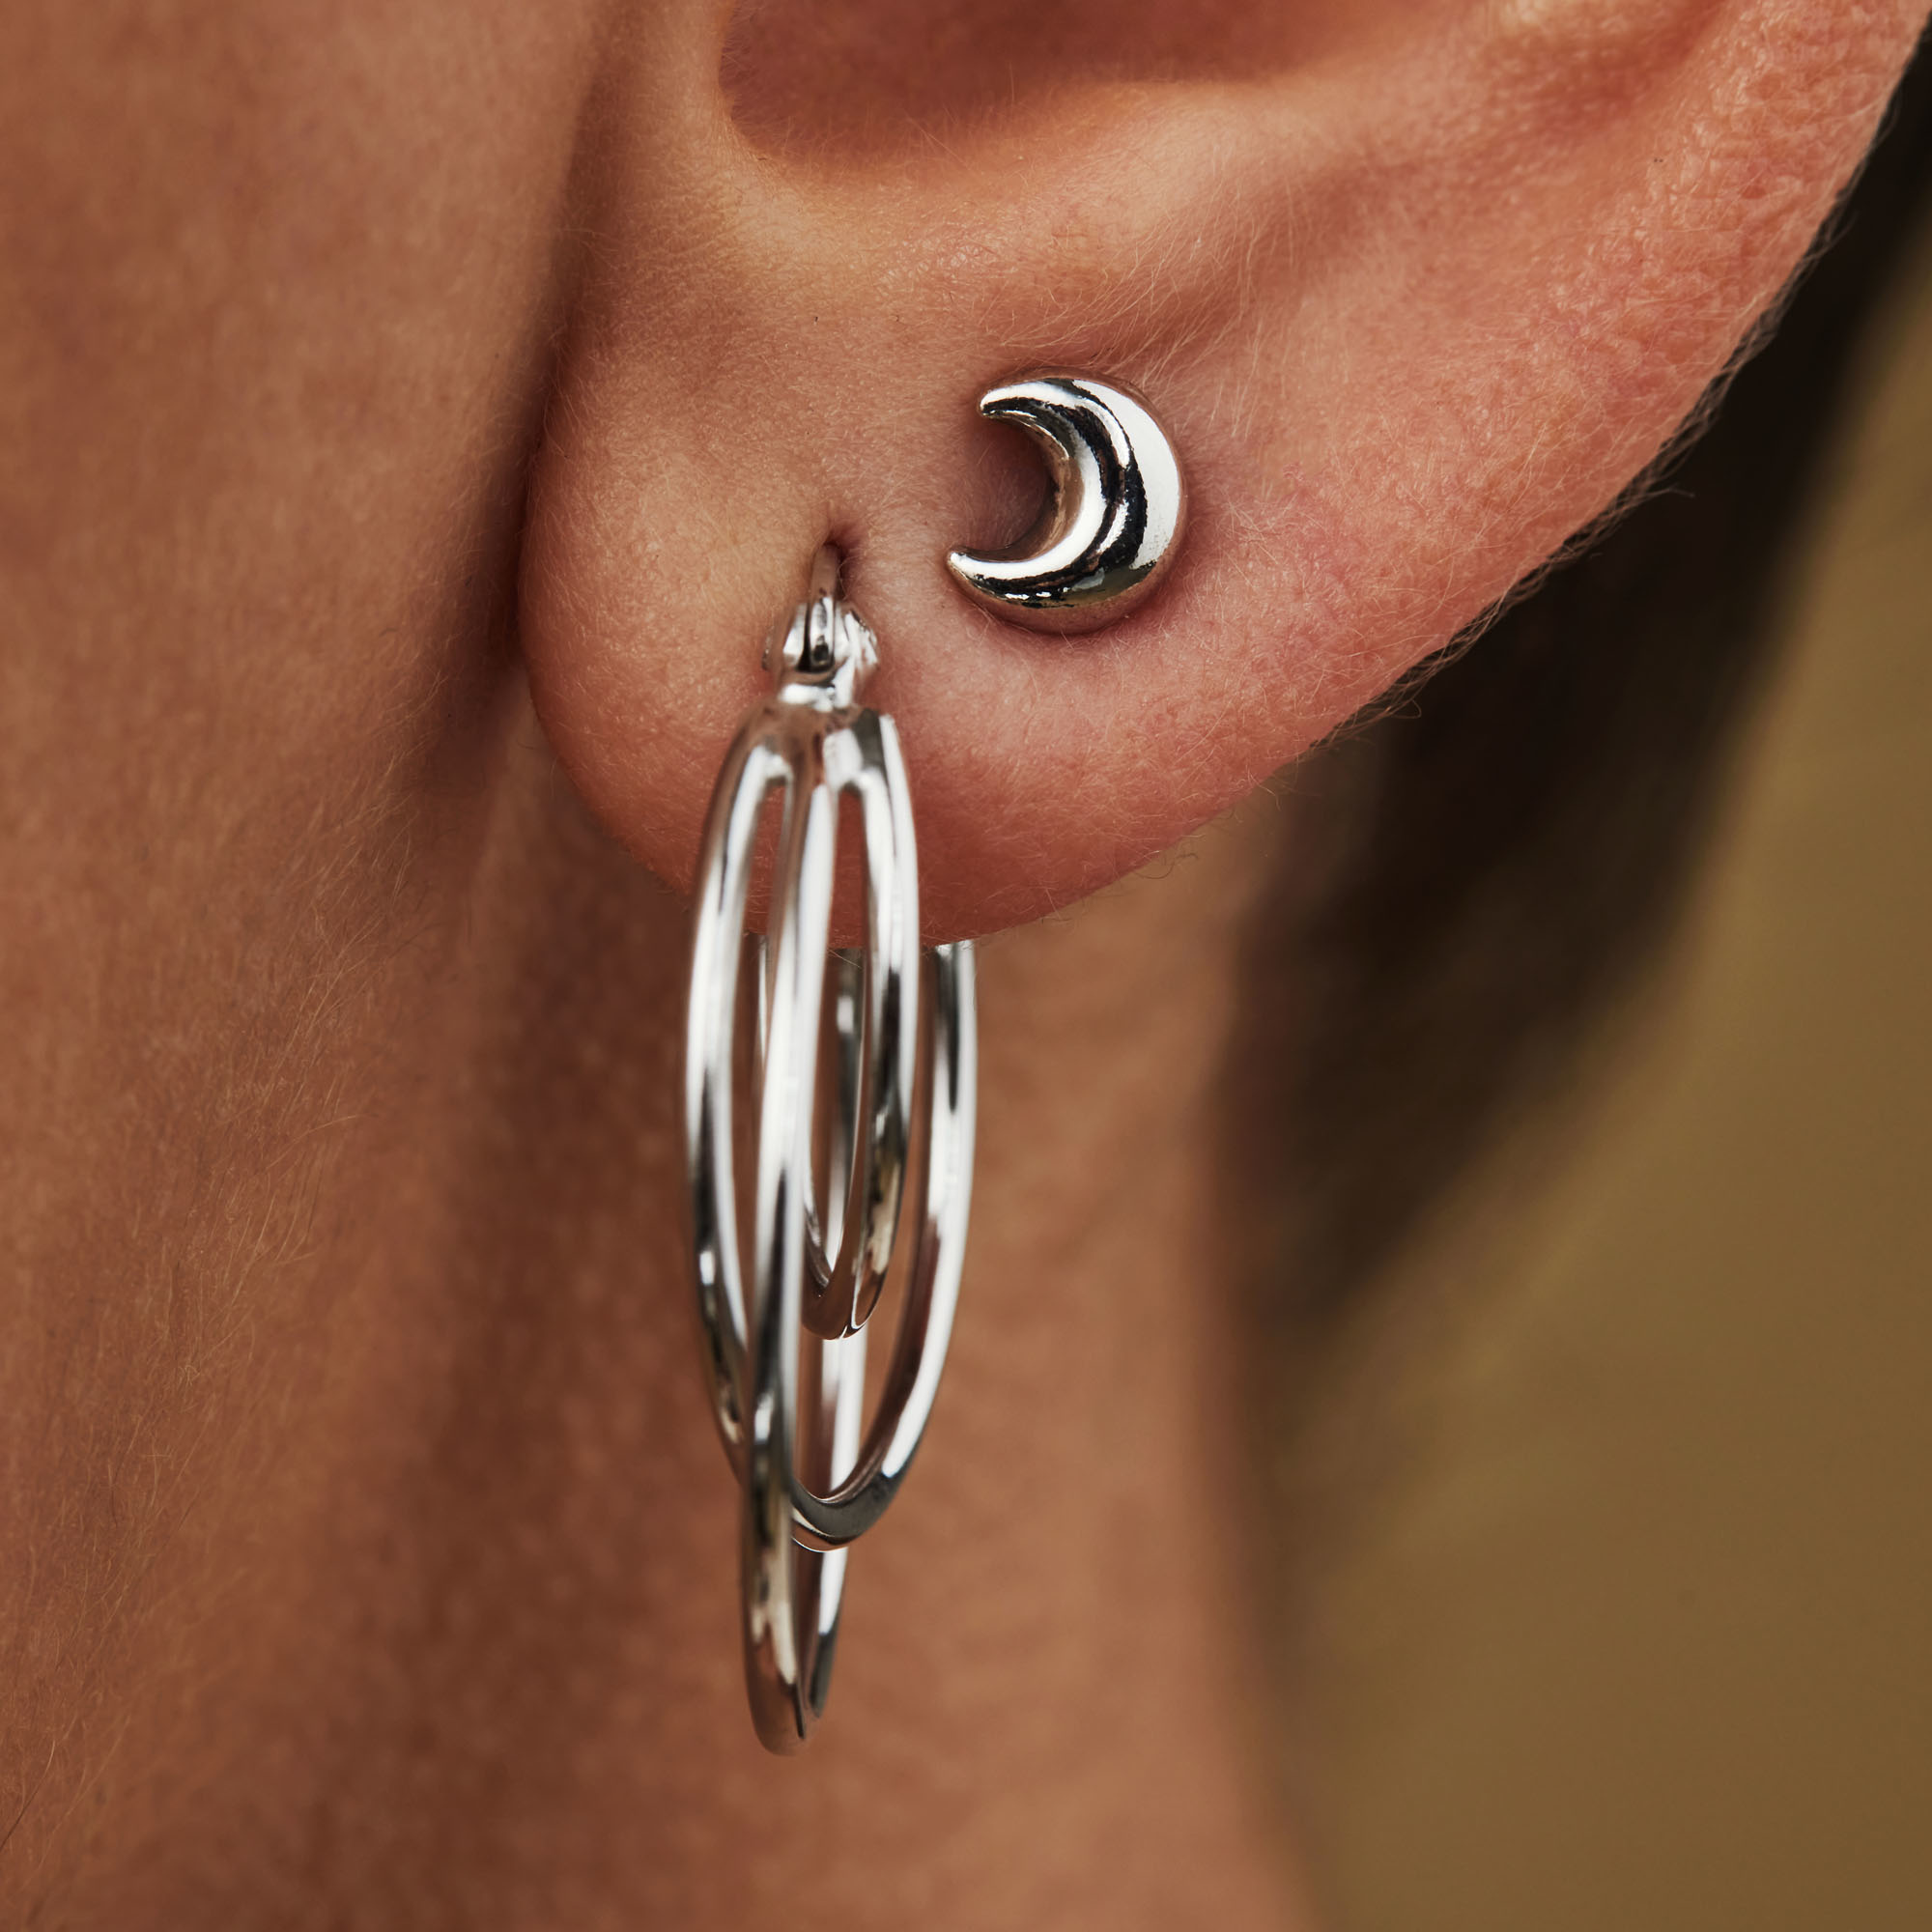 Selected Jewels Julie Louna 925 sterling silver ear studs with moon